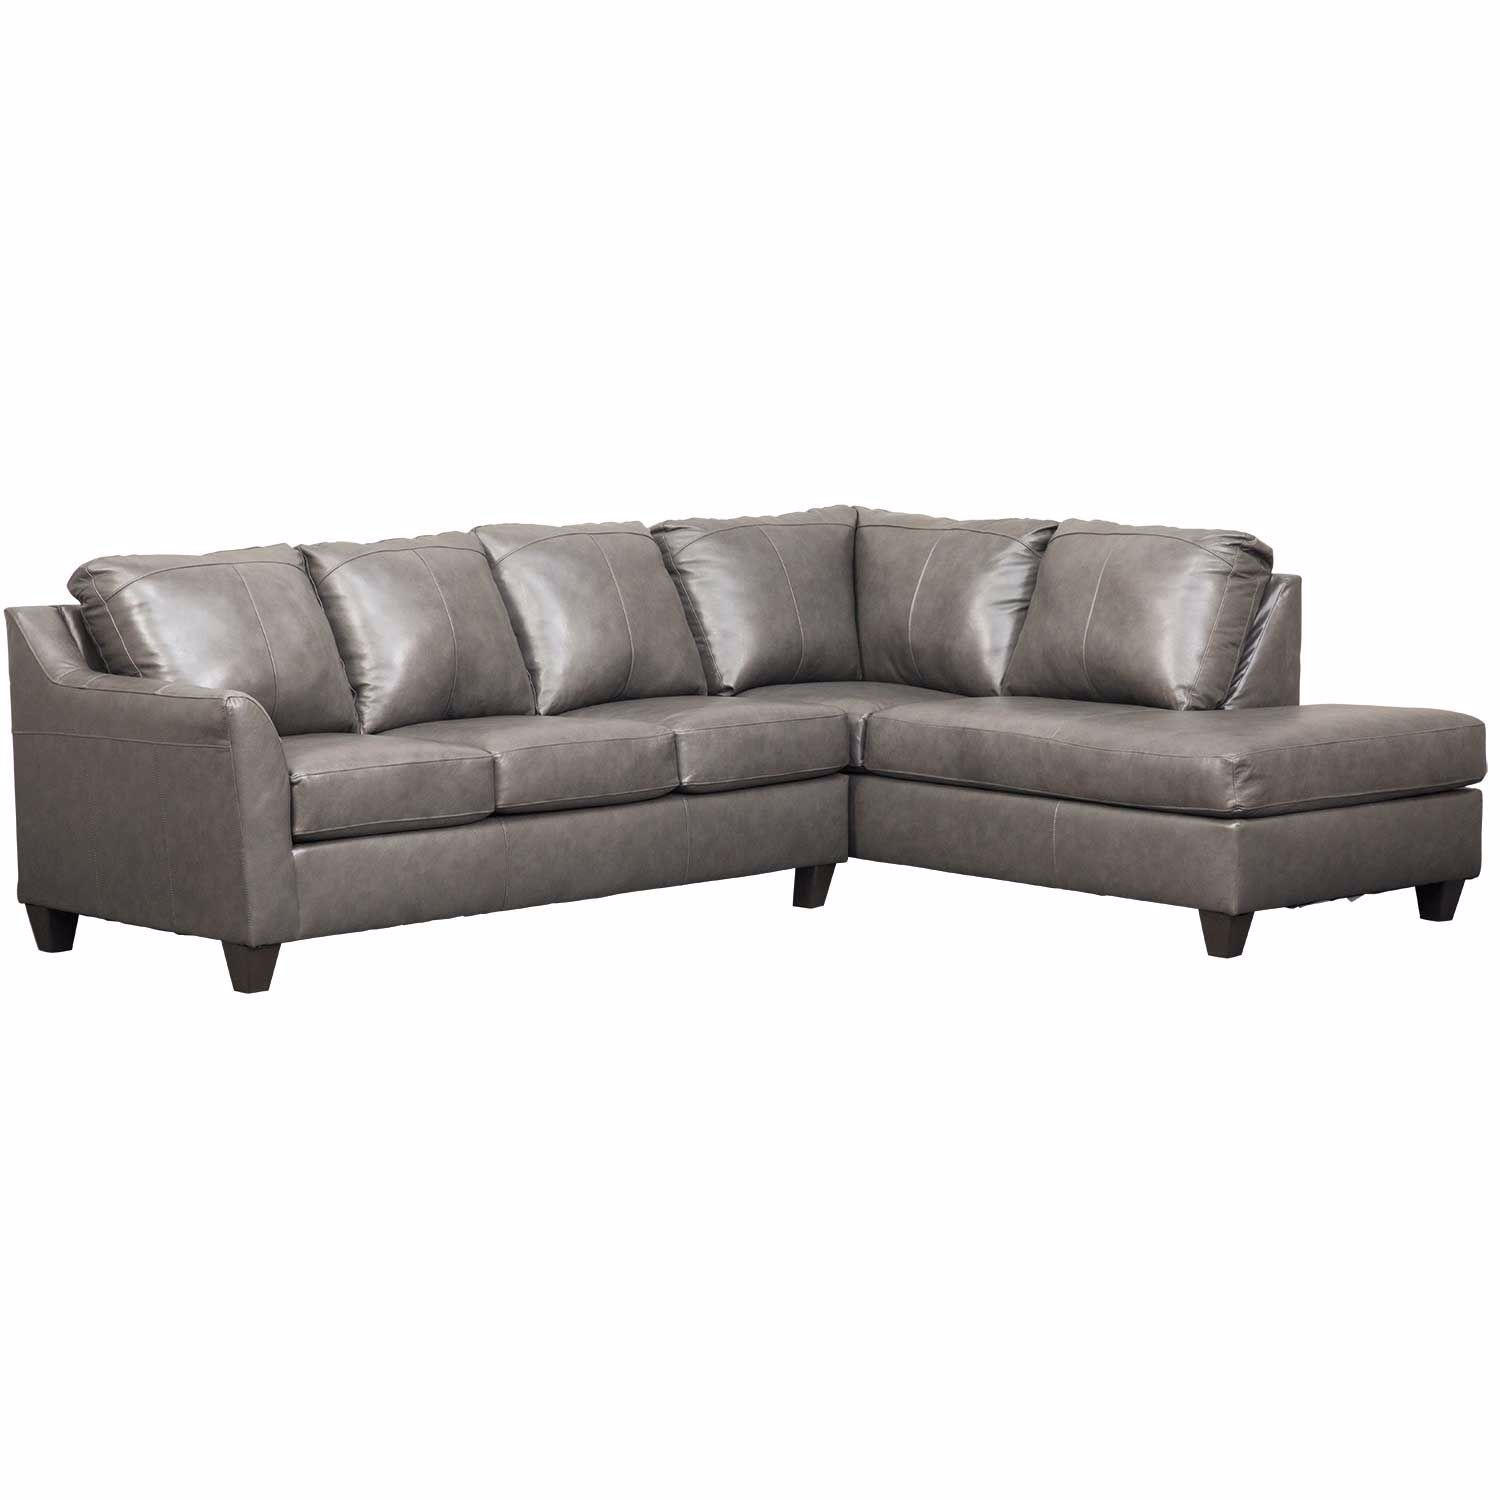 Brilliant Declan 2 Piece Fog Leather Sectional W Raf Chaise Forskolin Free Trial Chair Design Images Forskolin Free Trialorg